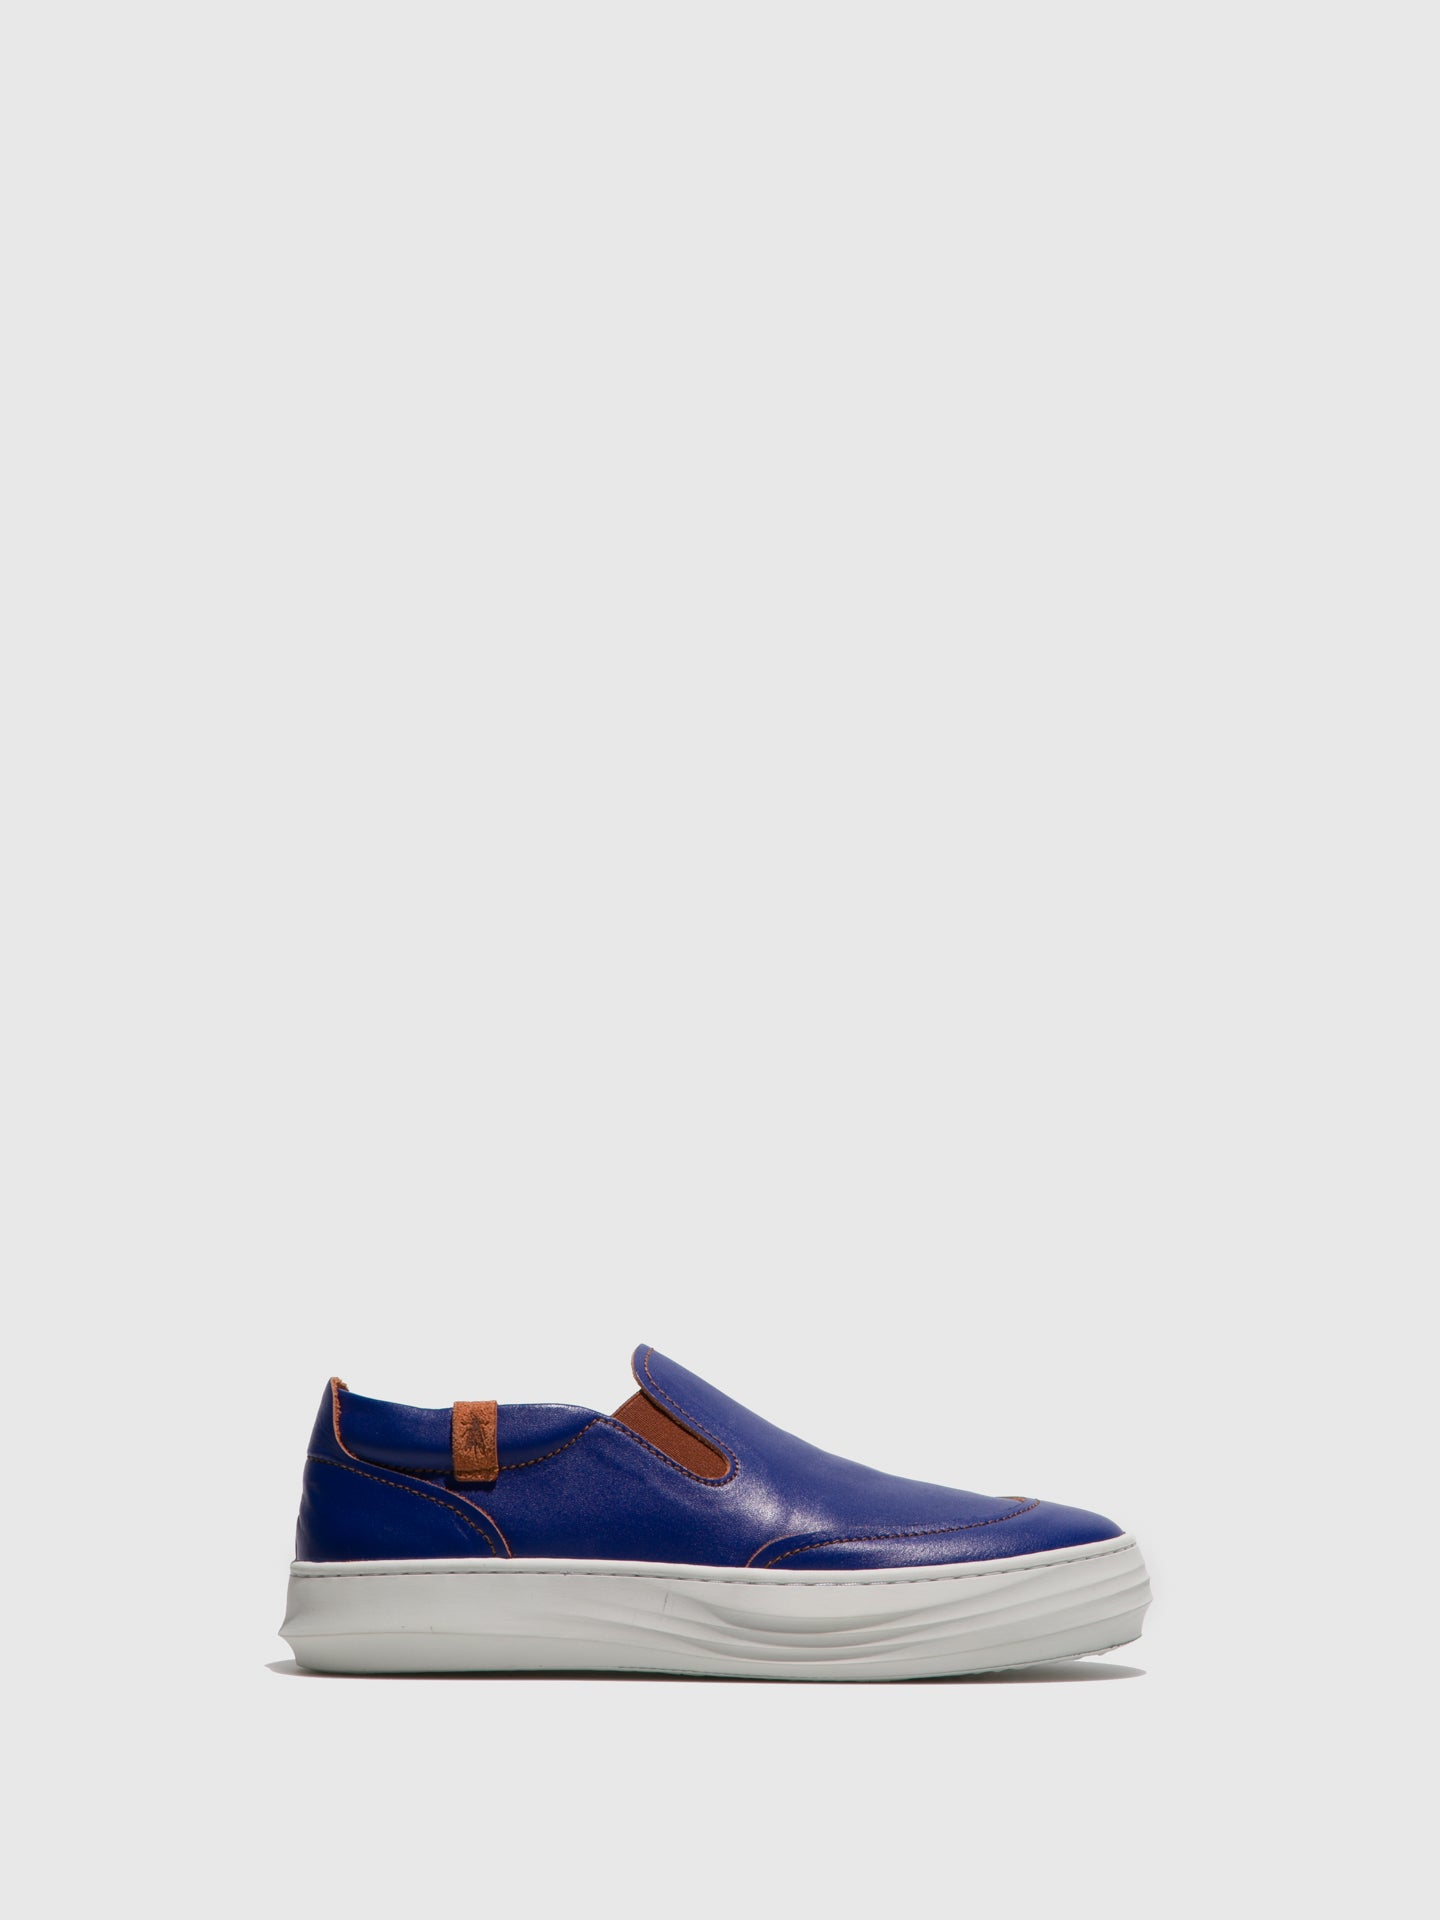 Fly London Blue Slip-on Trainers